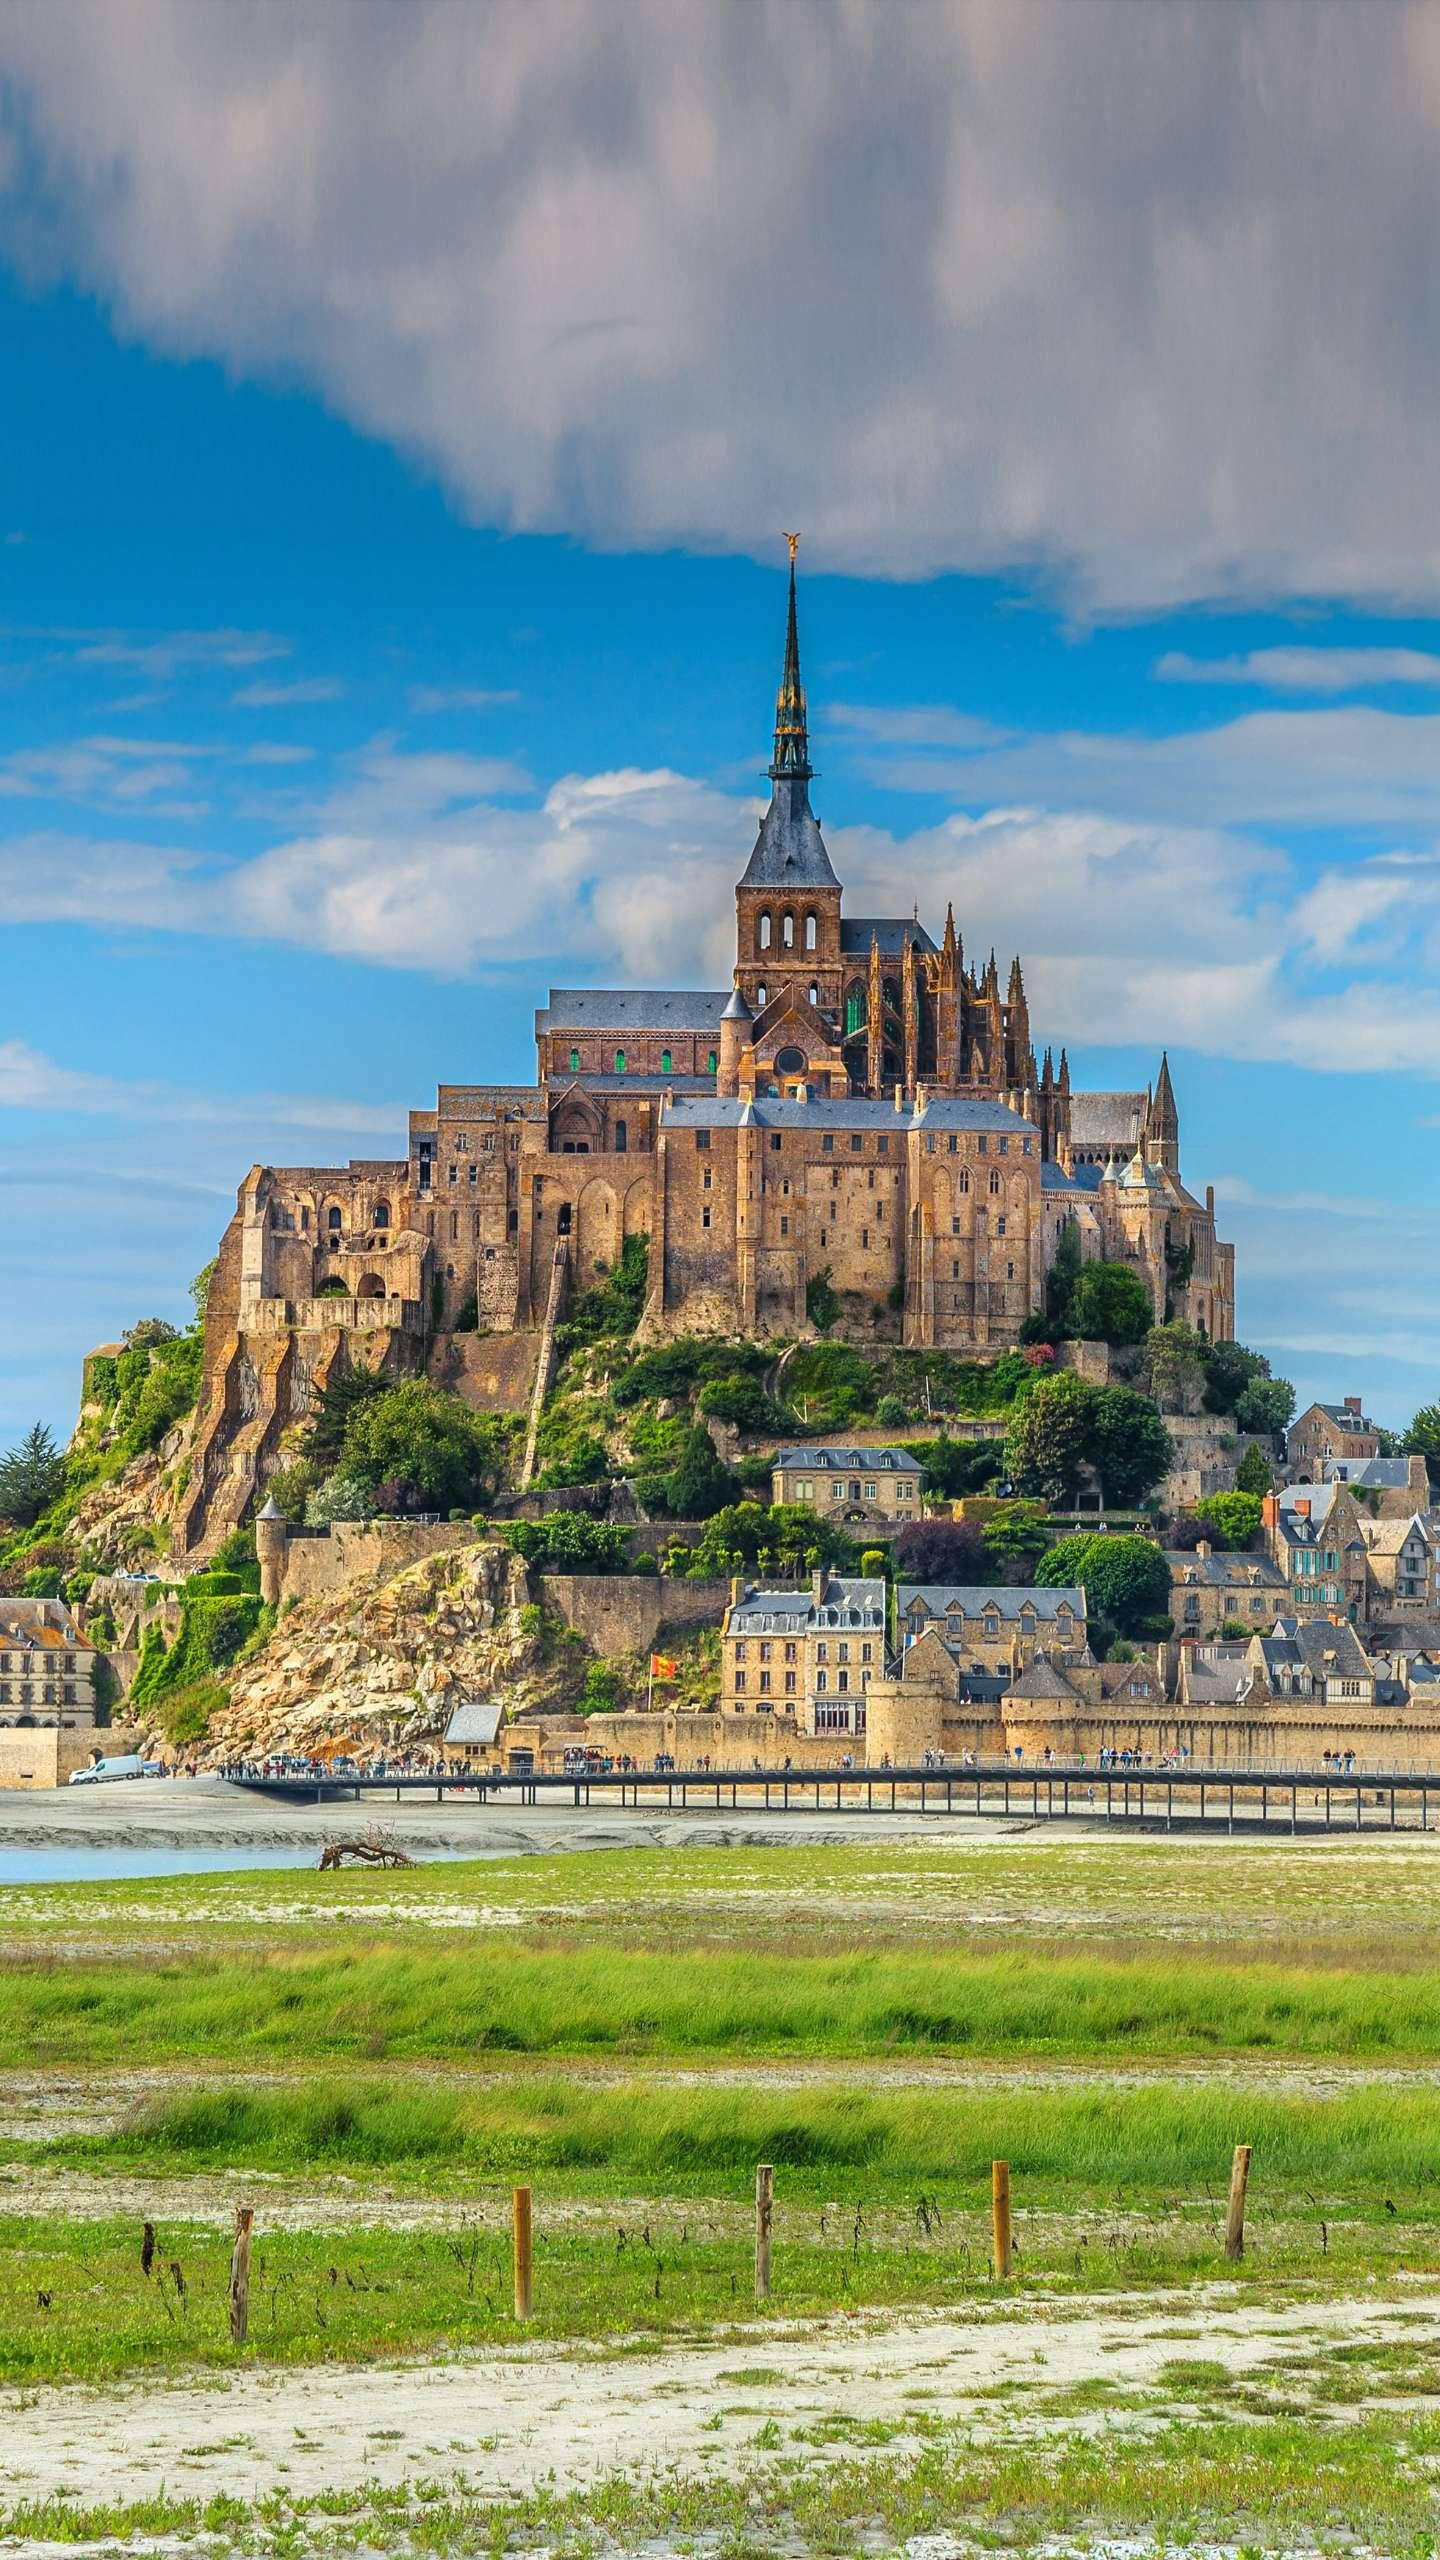 Mont Saint-Michel, Mont Saint-Michel is a famous French monument with a long history and beautiful natural scenery.